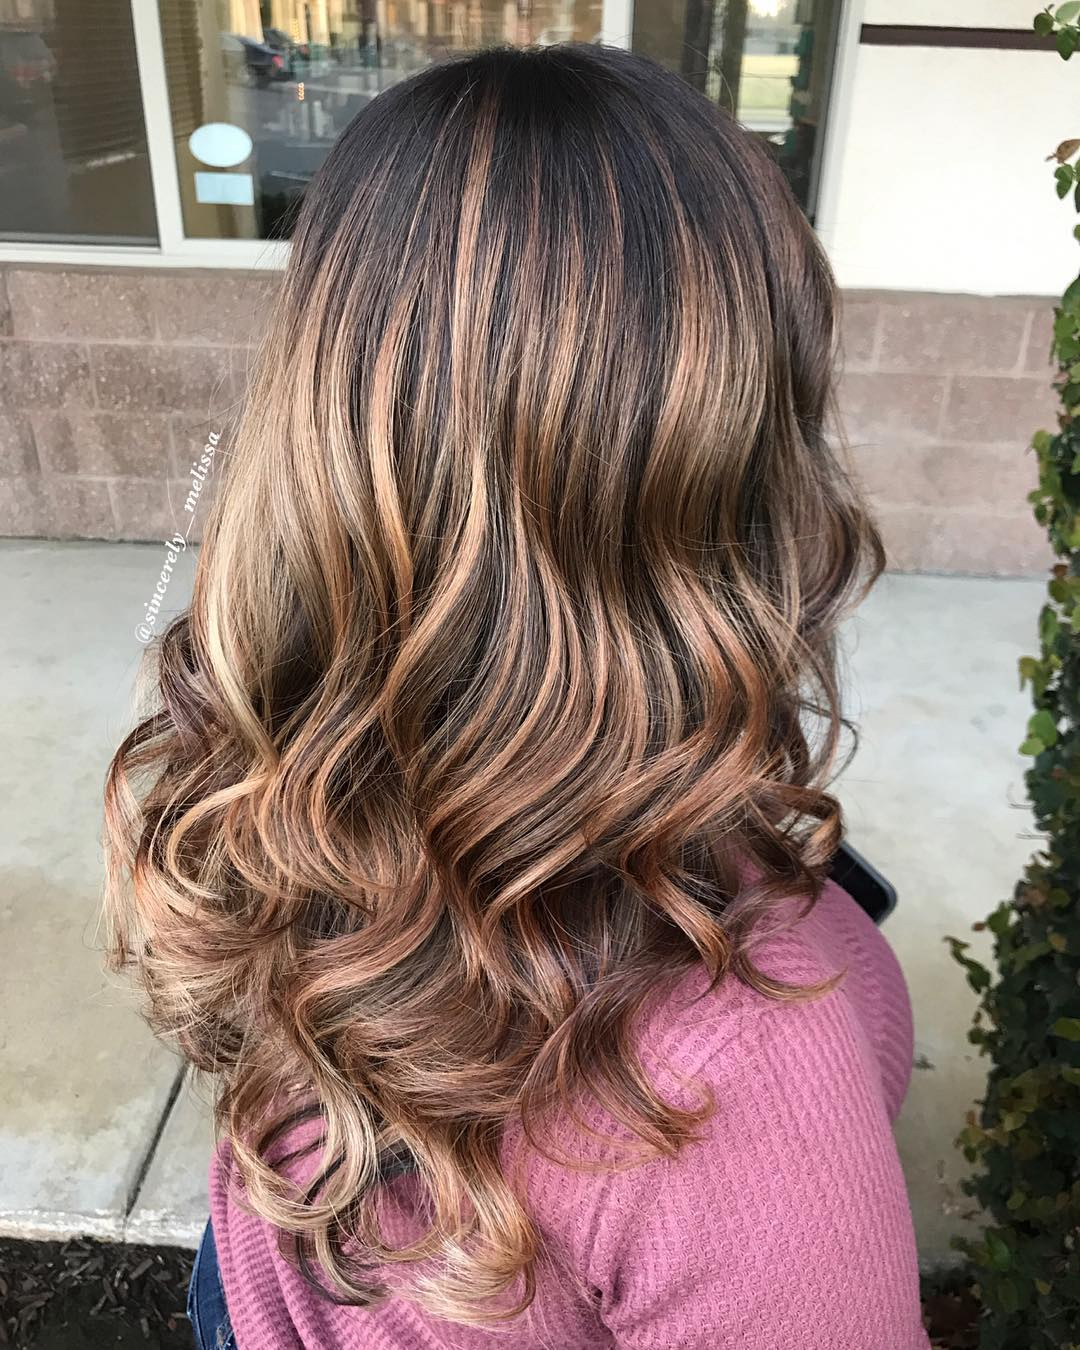 Long Caramel Waves with Dark Roots